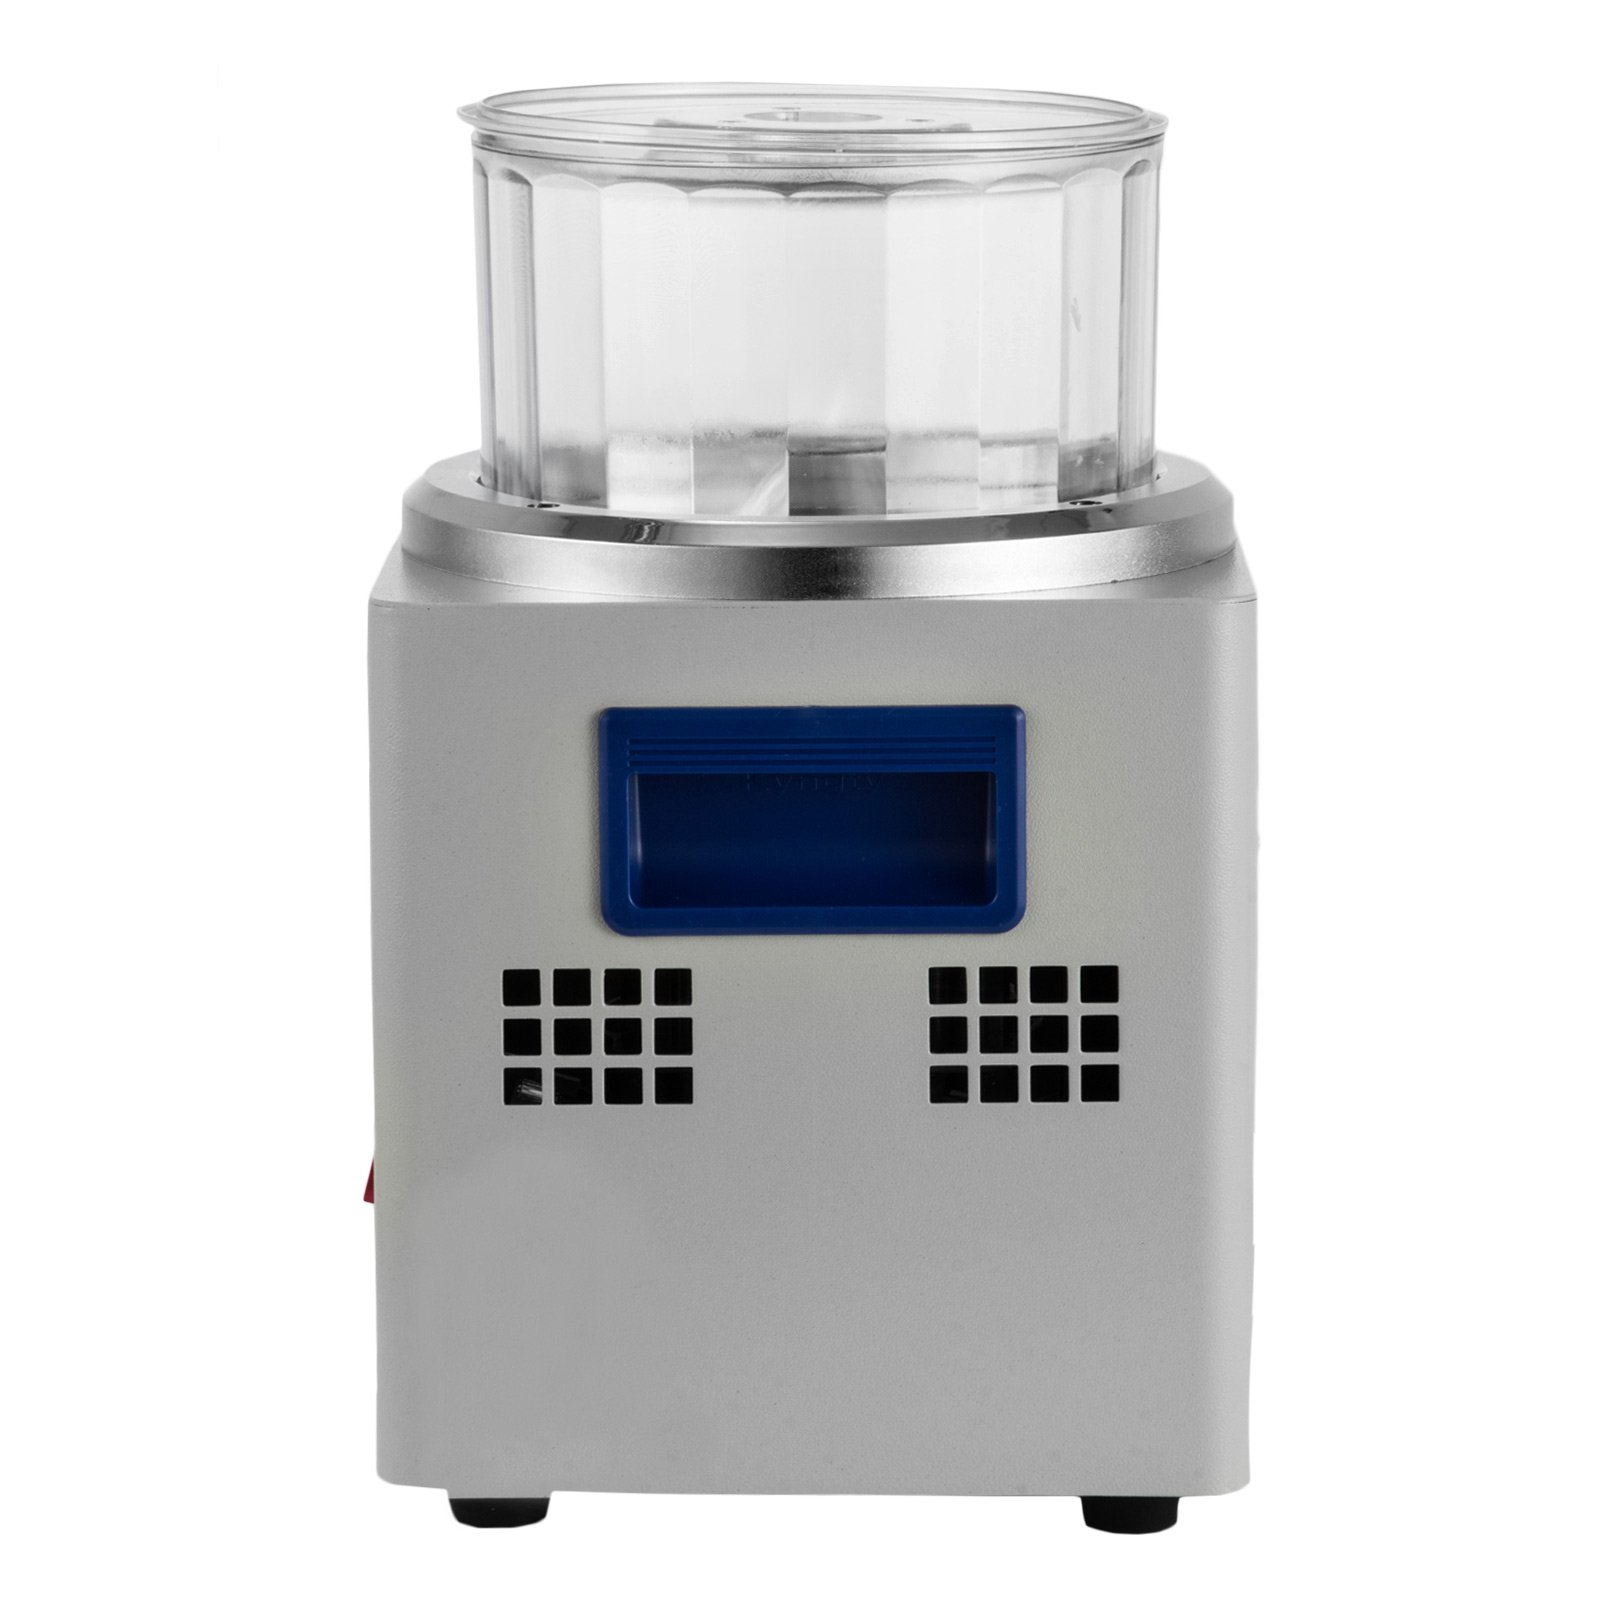 BestEquip KT-185CGT00000001V1 Tumbler 2000 RPM Finisher 7.3 inch Magnetic Polisher with Adjustable Speed for Jewelry (KT185) by BestEquip (Image #3)